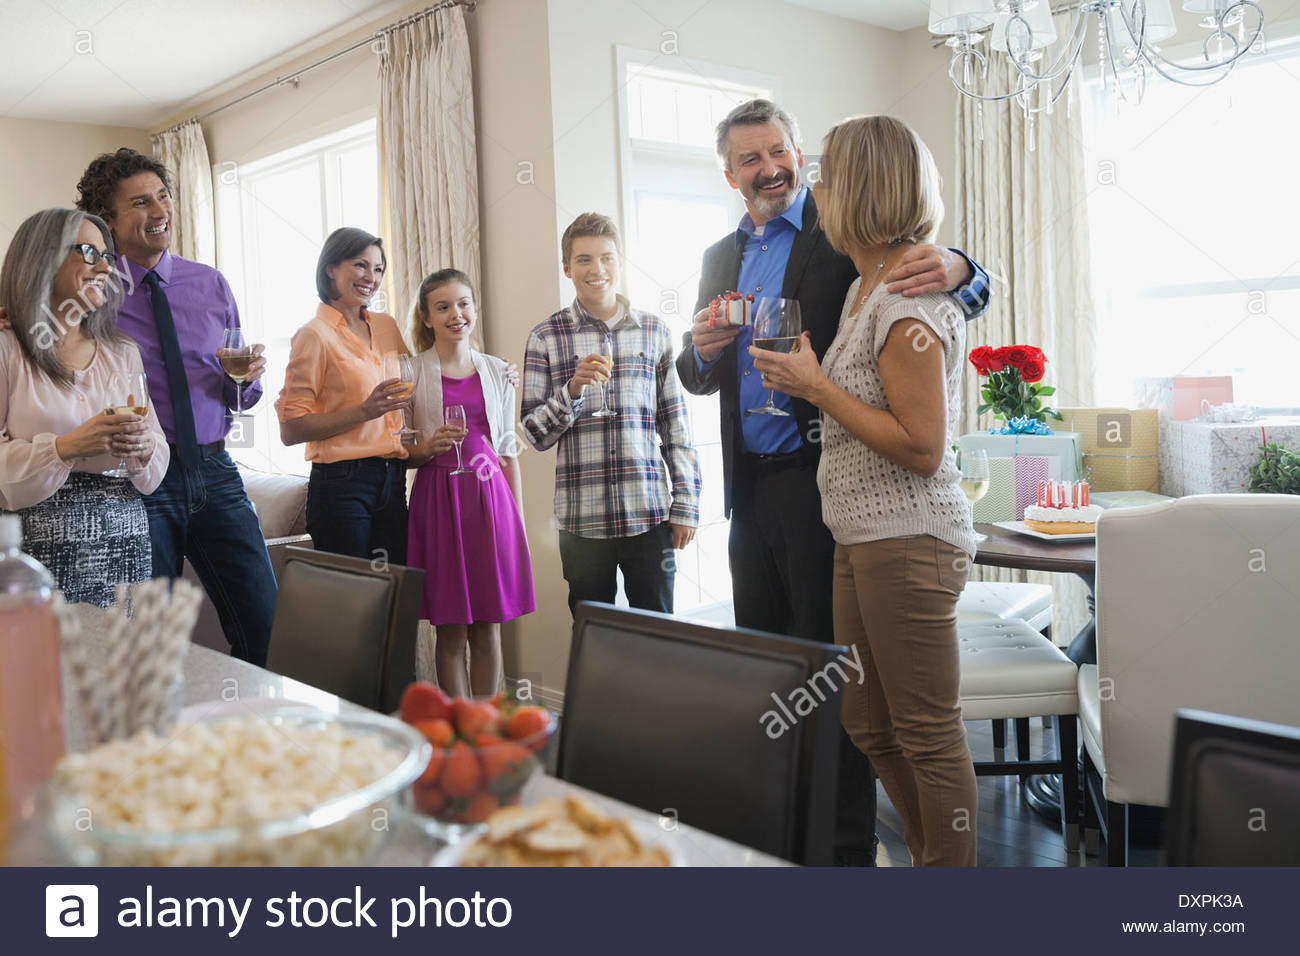 Family and friends enjoying drinks at birthday party - Stock Image